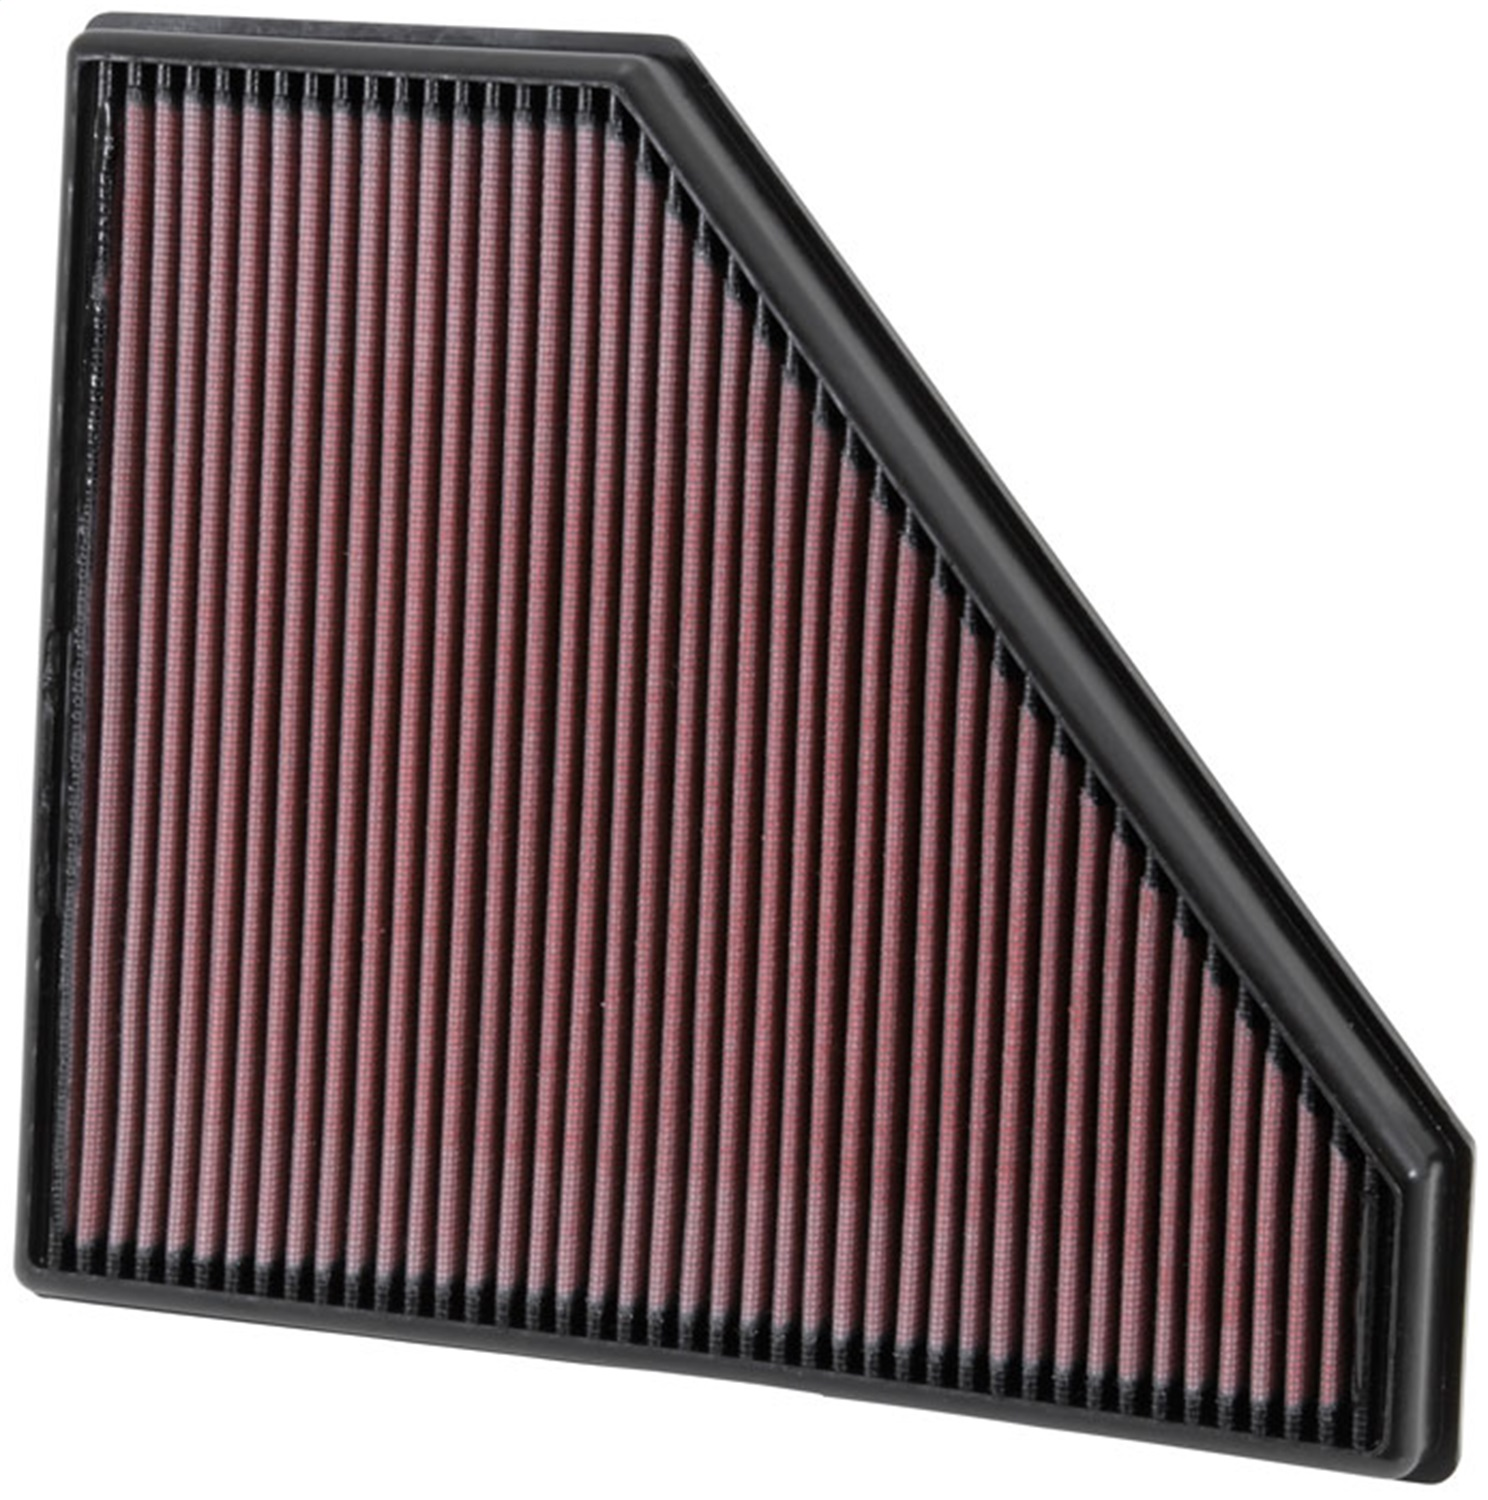 K&N Filters 33-2496 Air Filter Fits 13-15 ATS CTS 33-2496